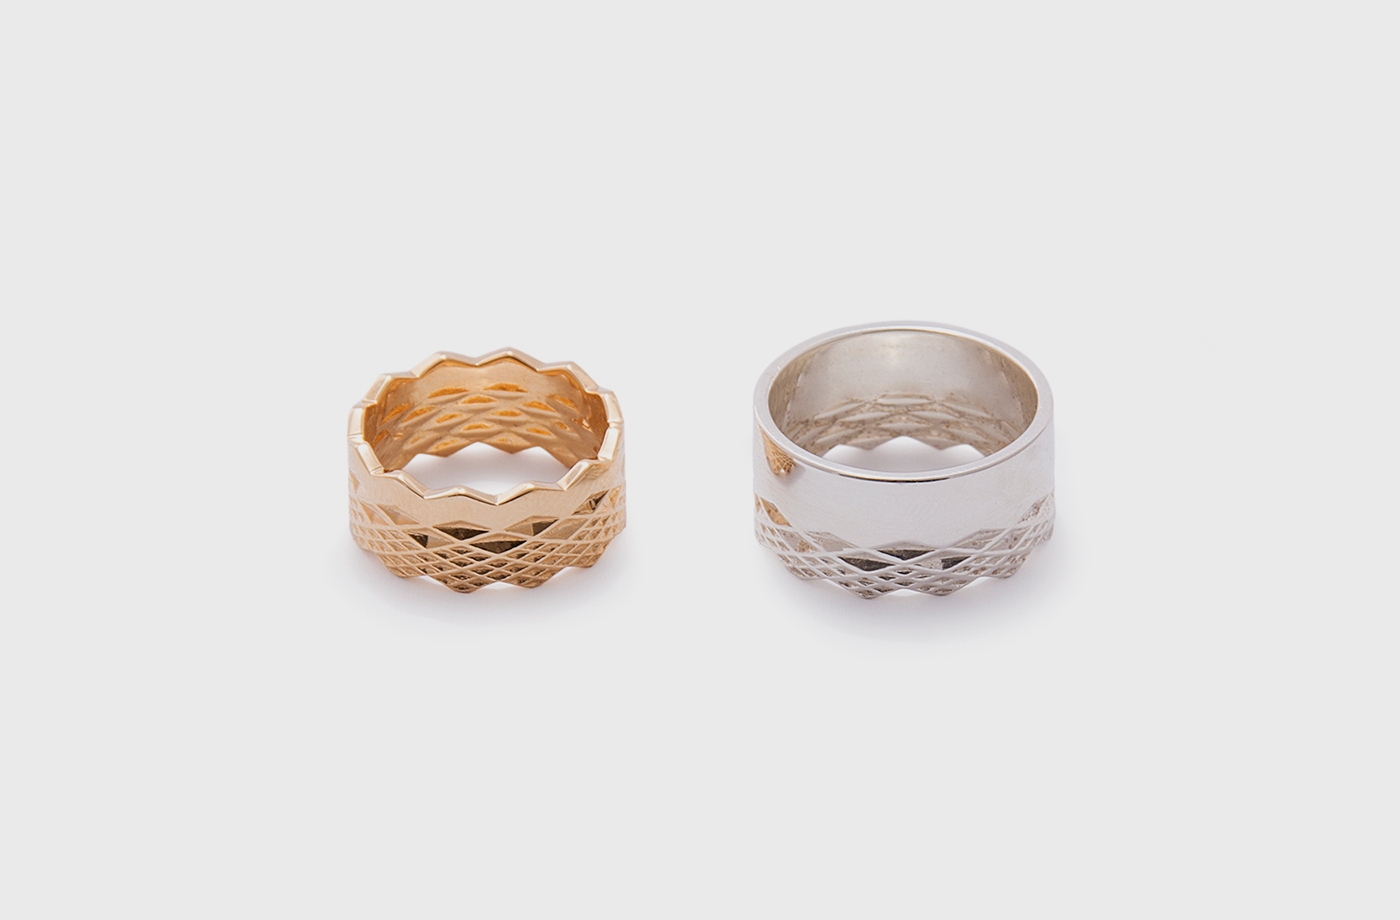 pieterbostoen-com-Angular-custom-wedding-rings-02